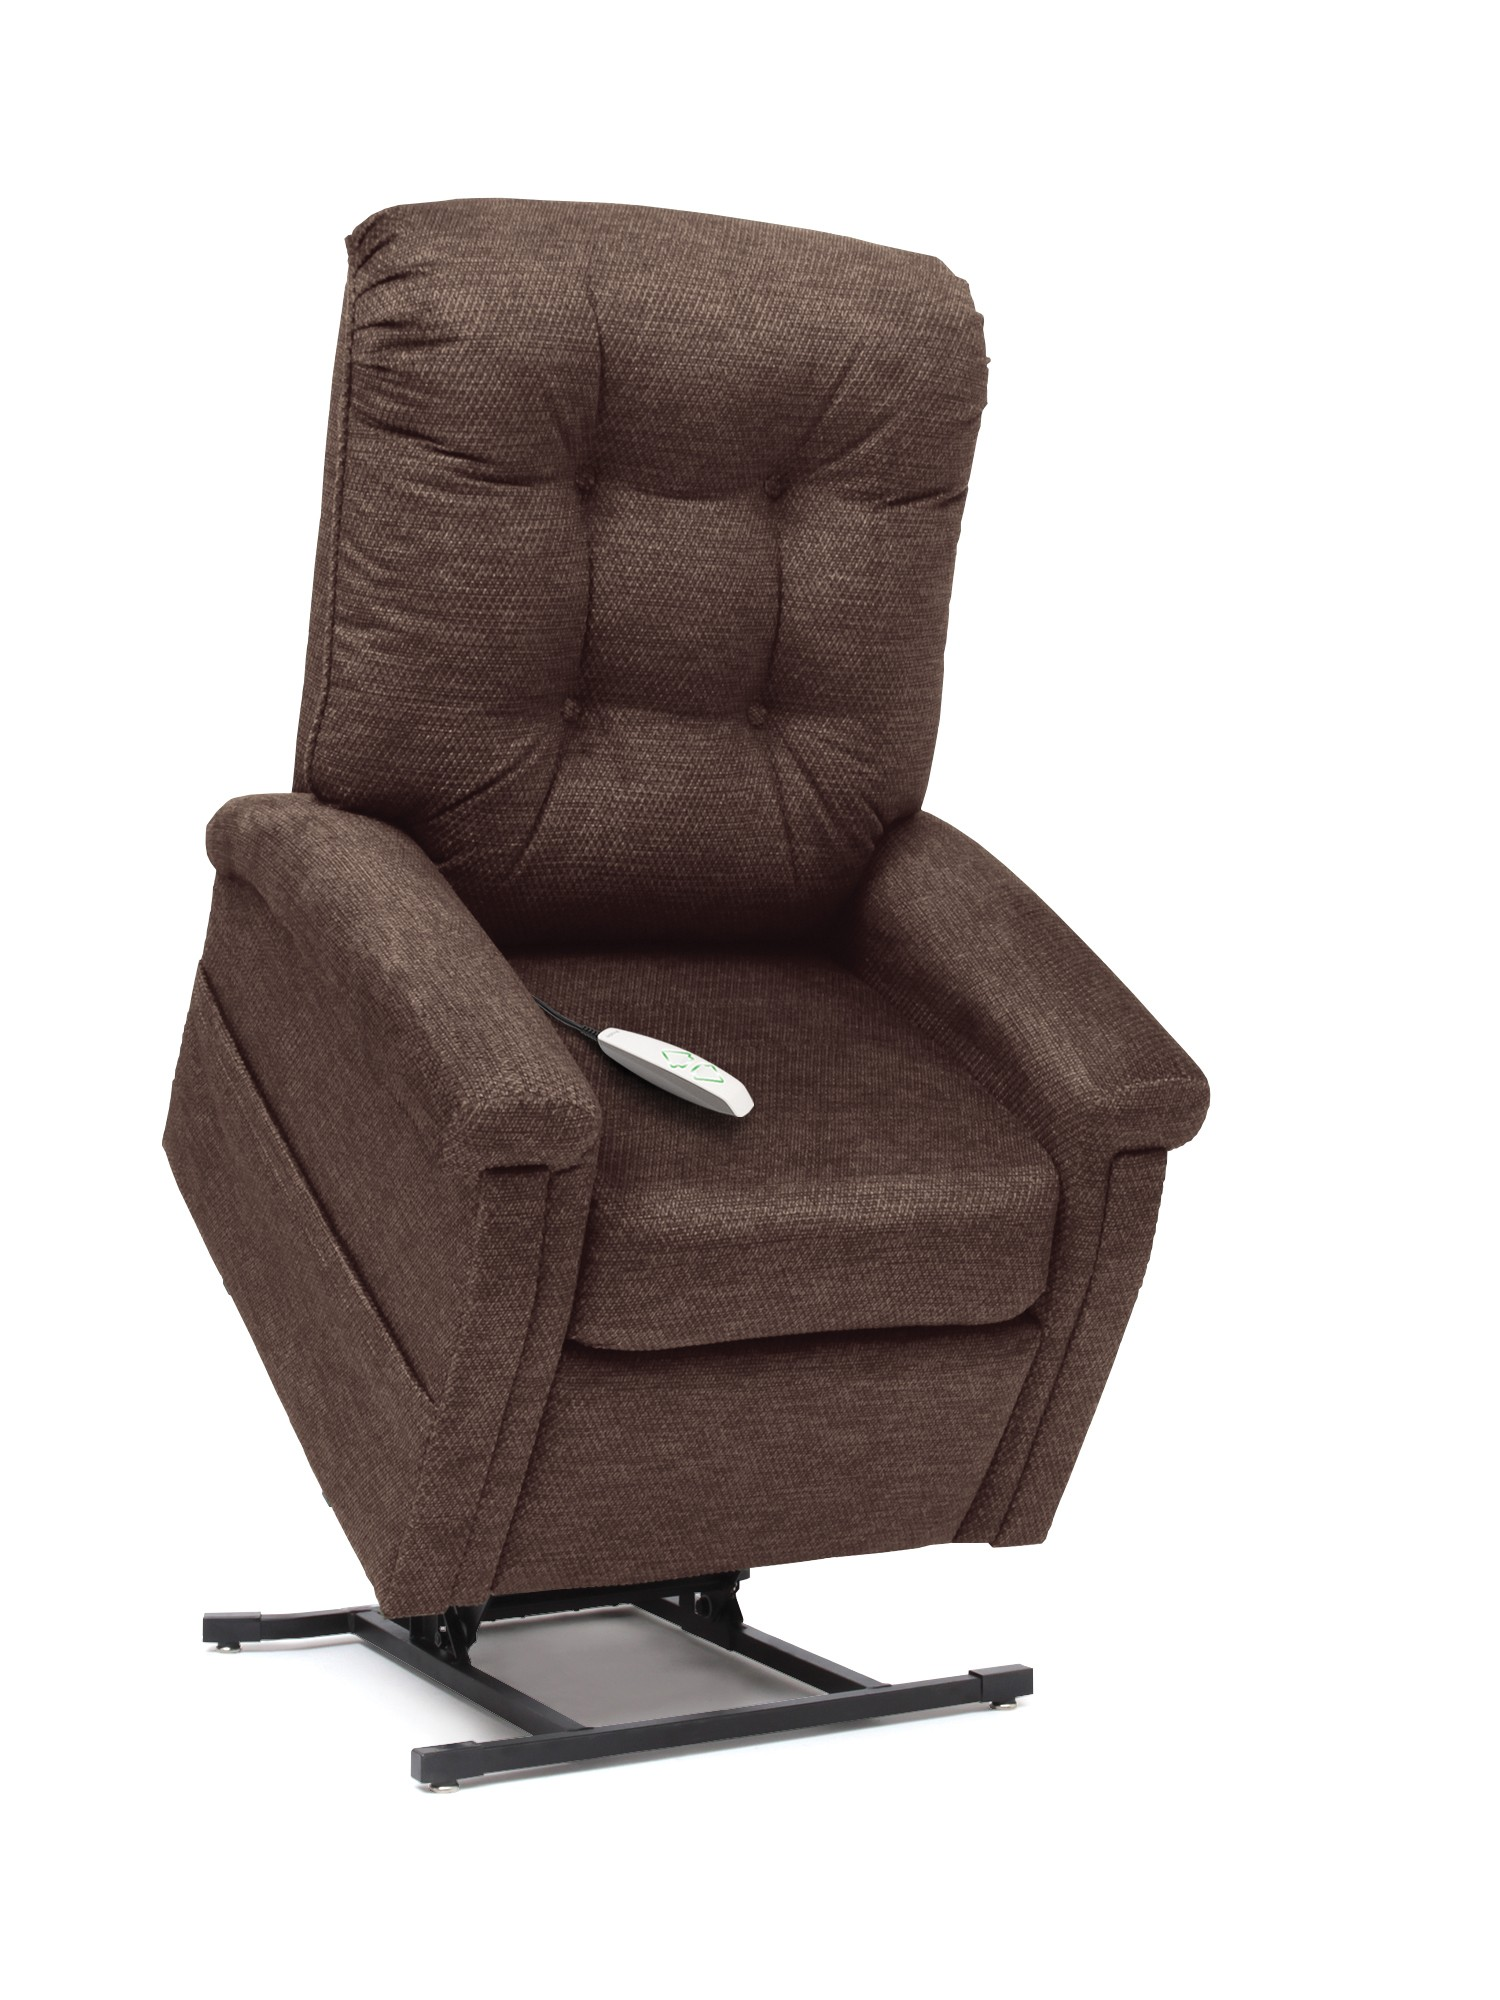 pride classic collection lift chair